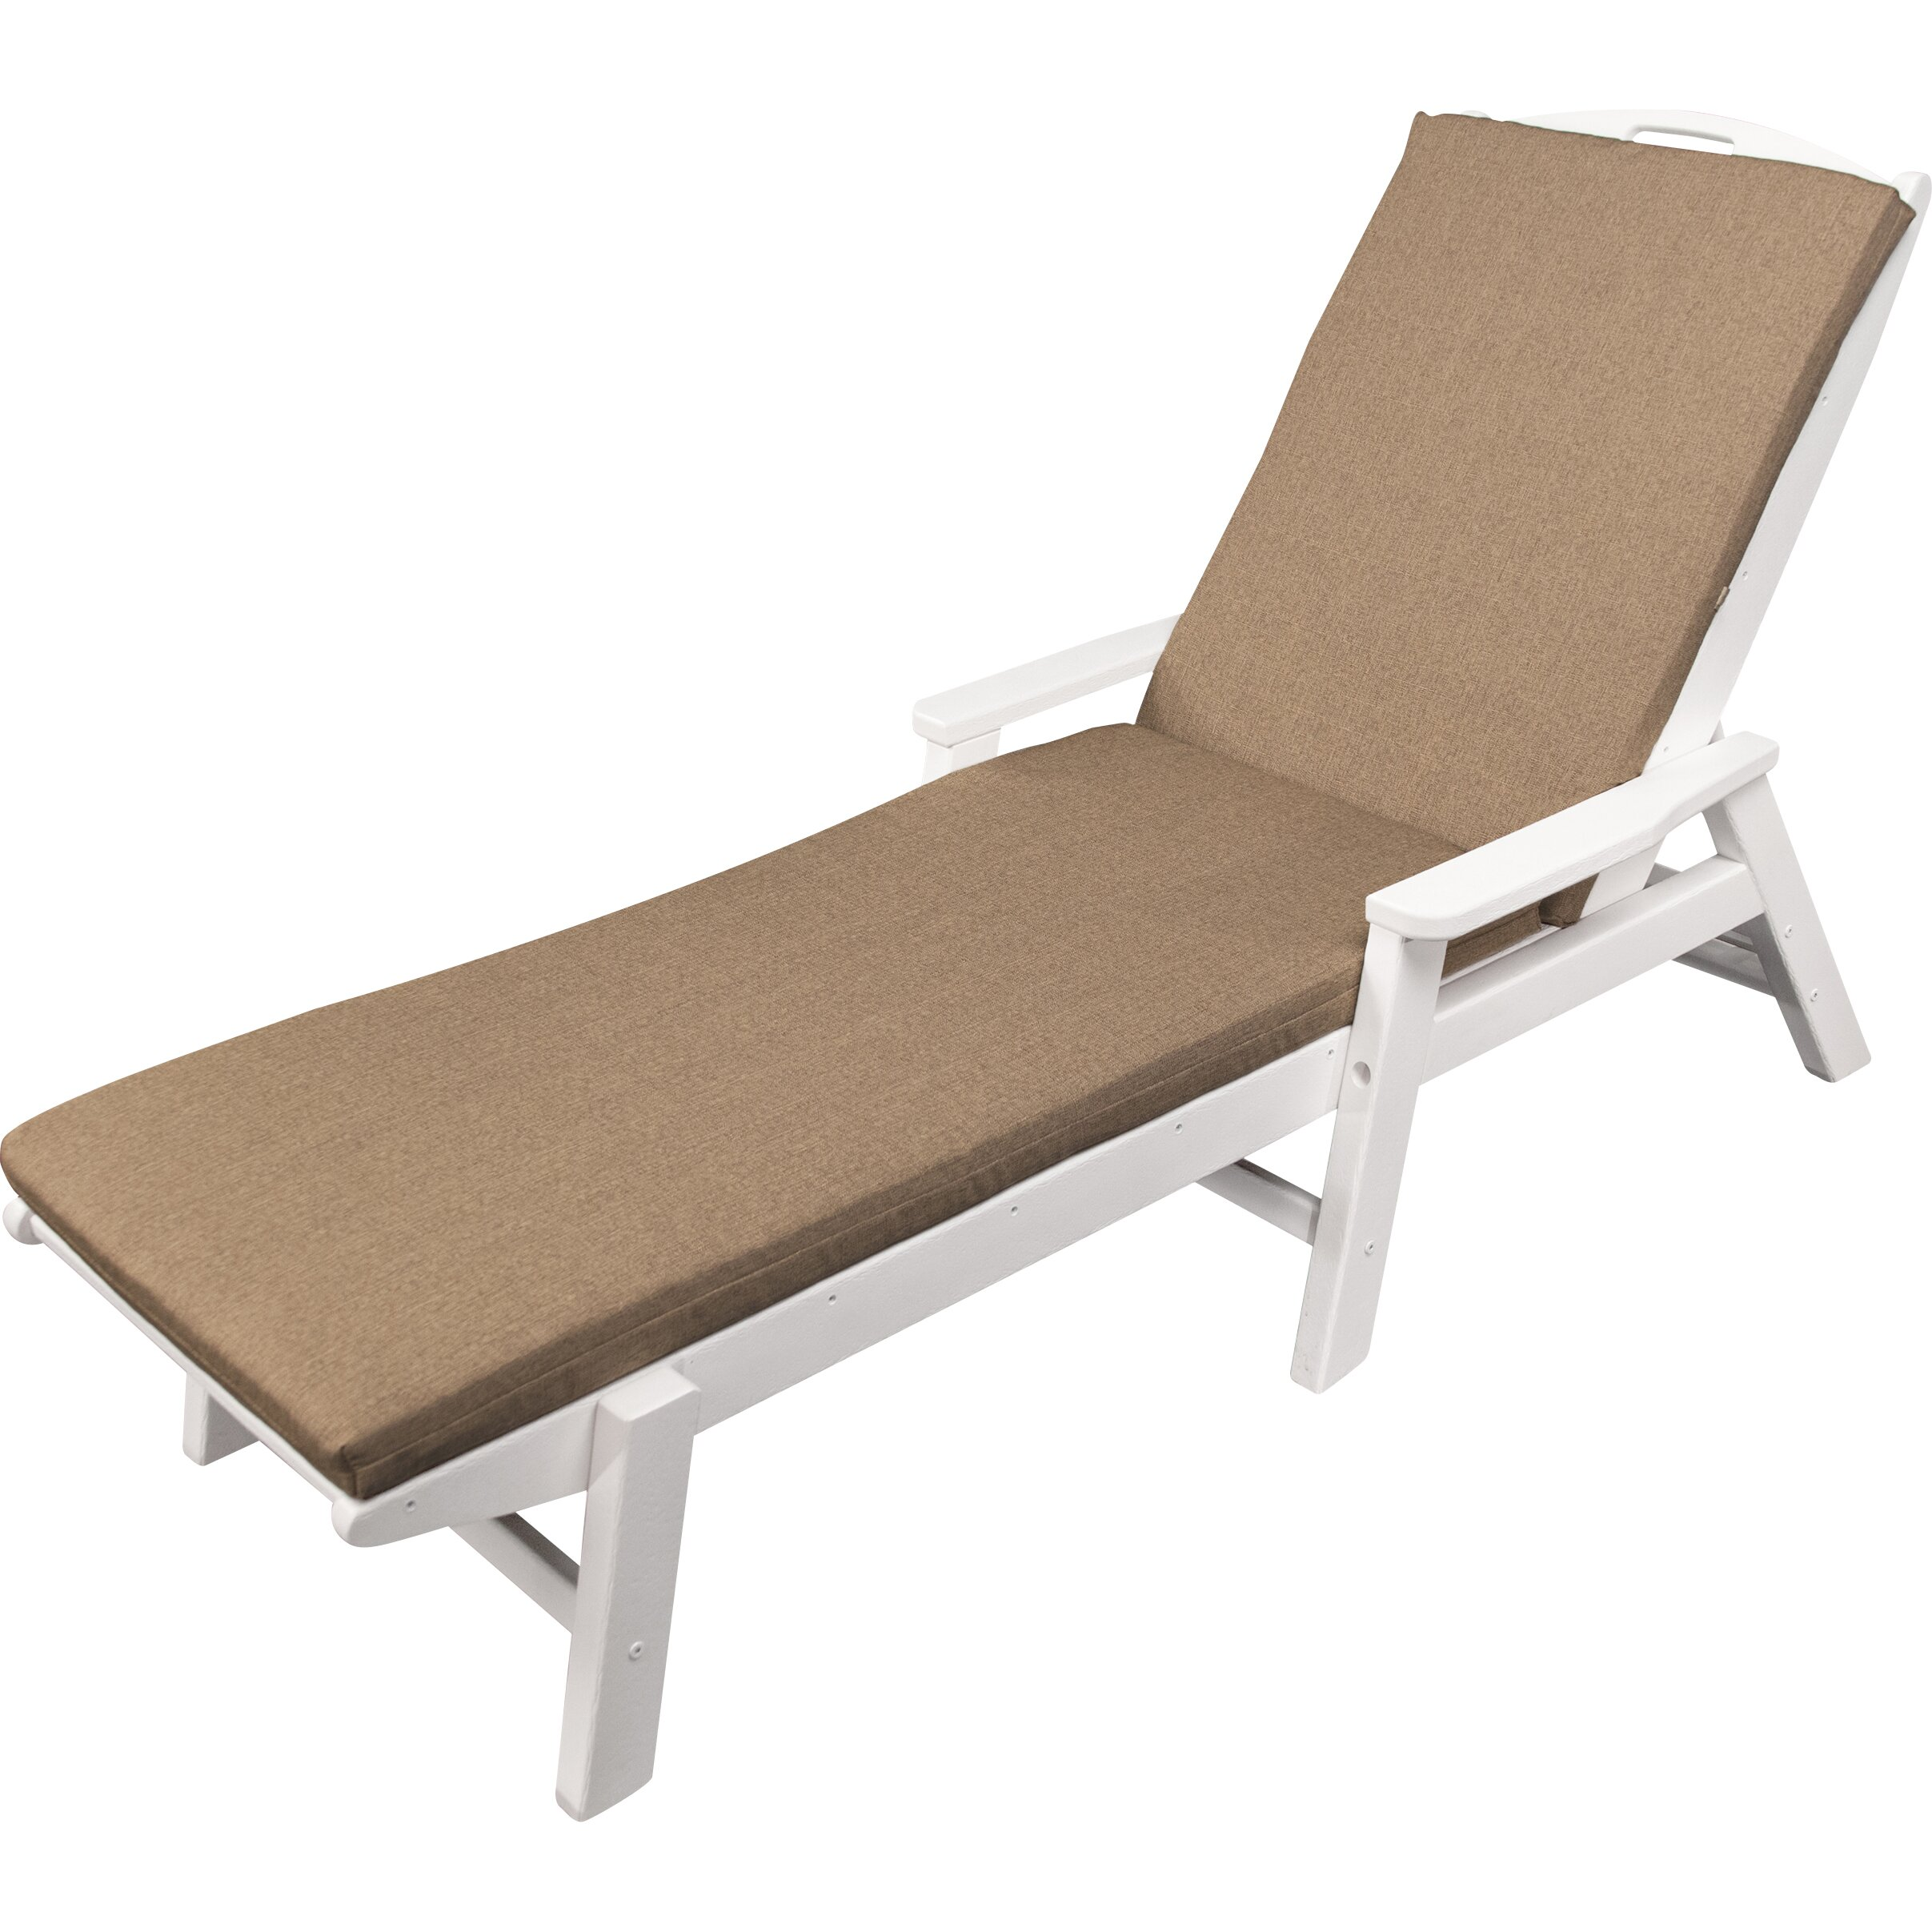 Ateeva outdoor sunbrella chaise lounge cushion reviews for Chaise cushions sale